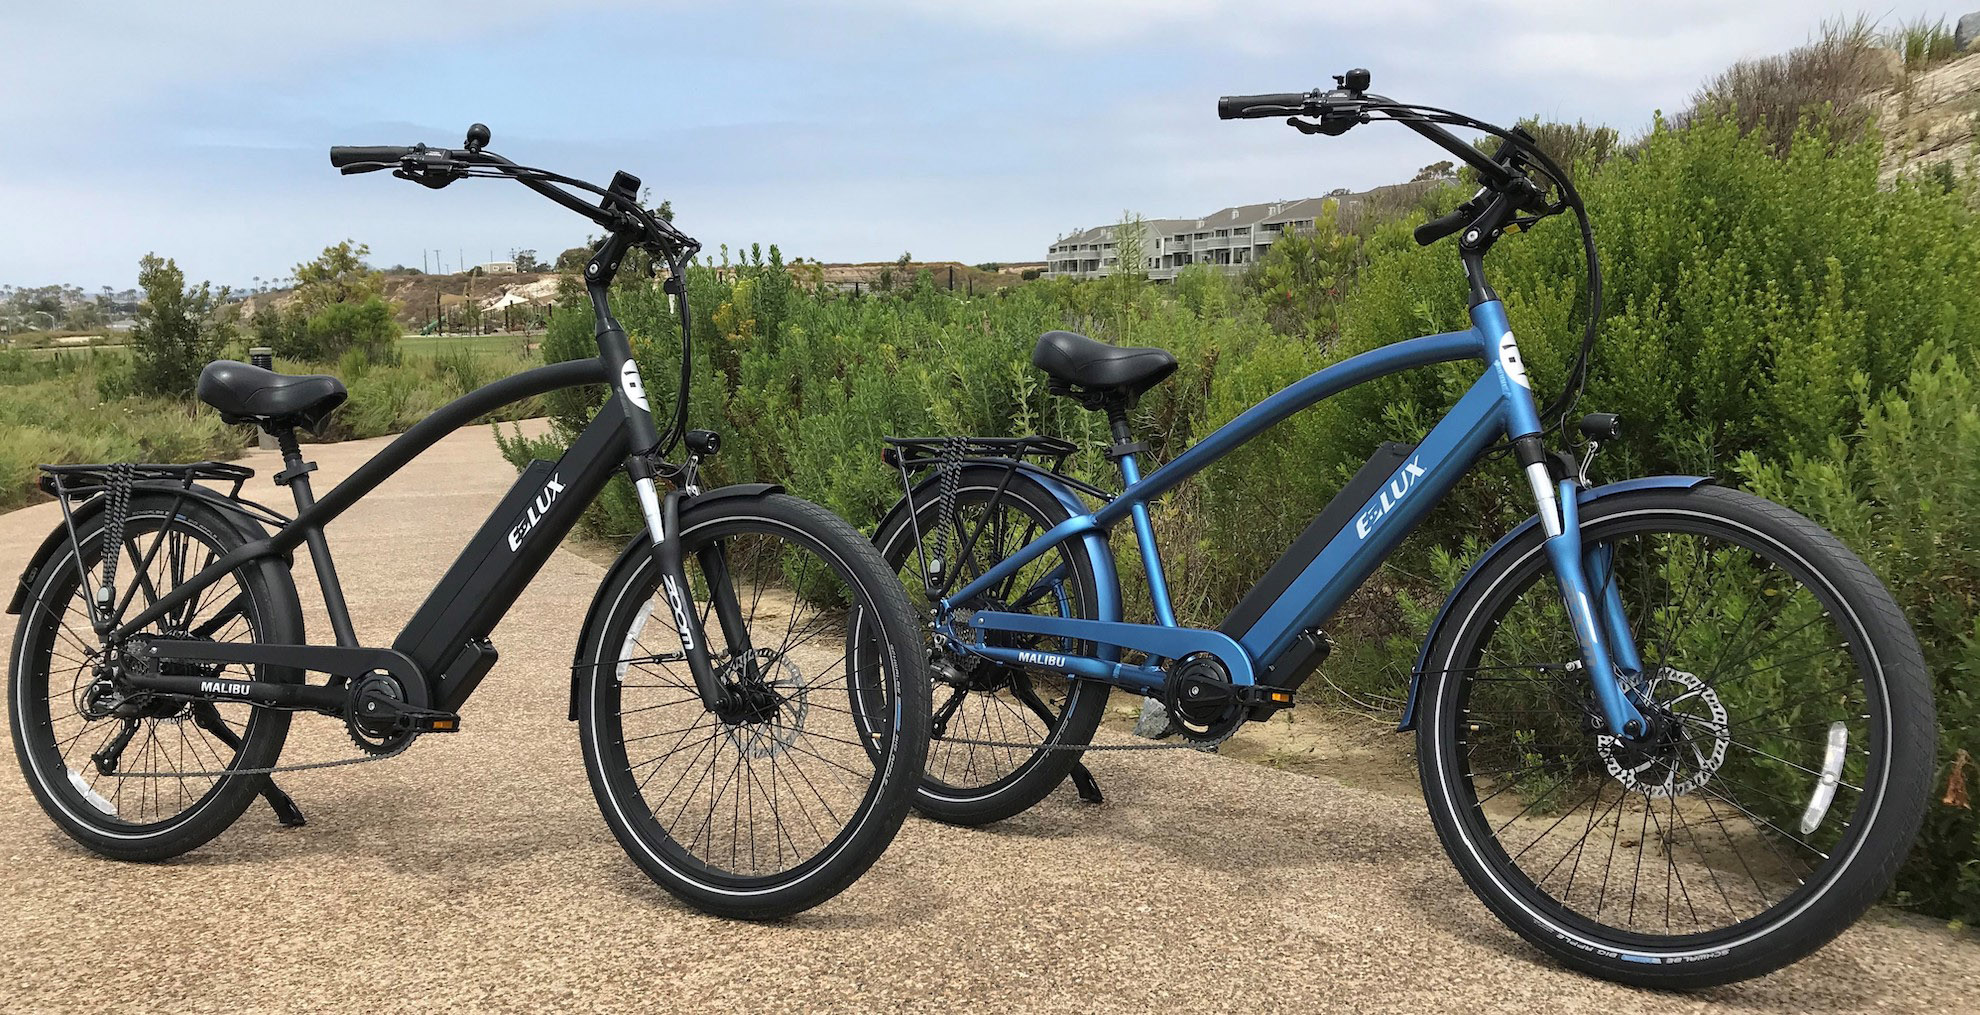 Malibu E-Lux Electric Bikes